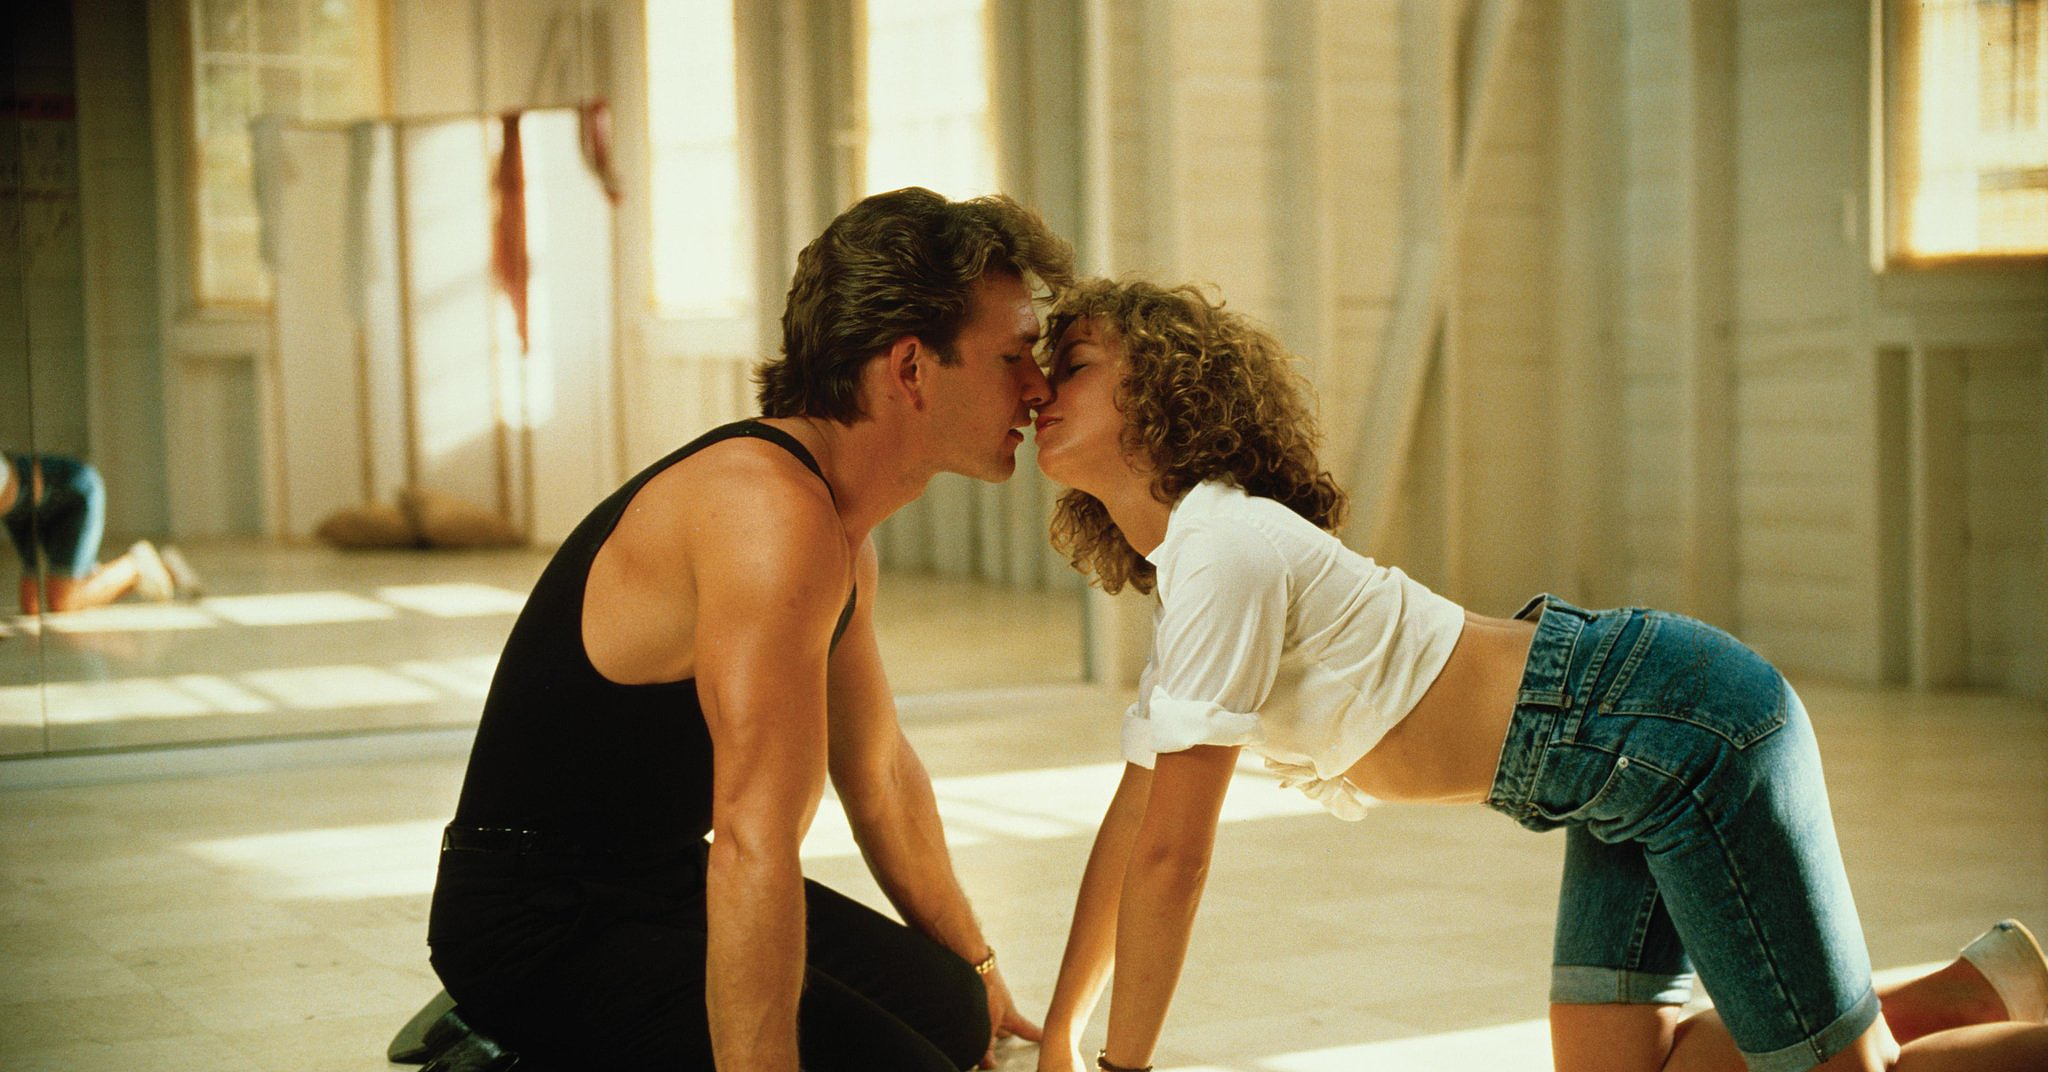 Dirty Dancing comes to Summer Movie on the Canal . July 15 +16 at the Green Building.